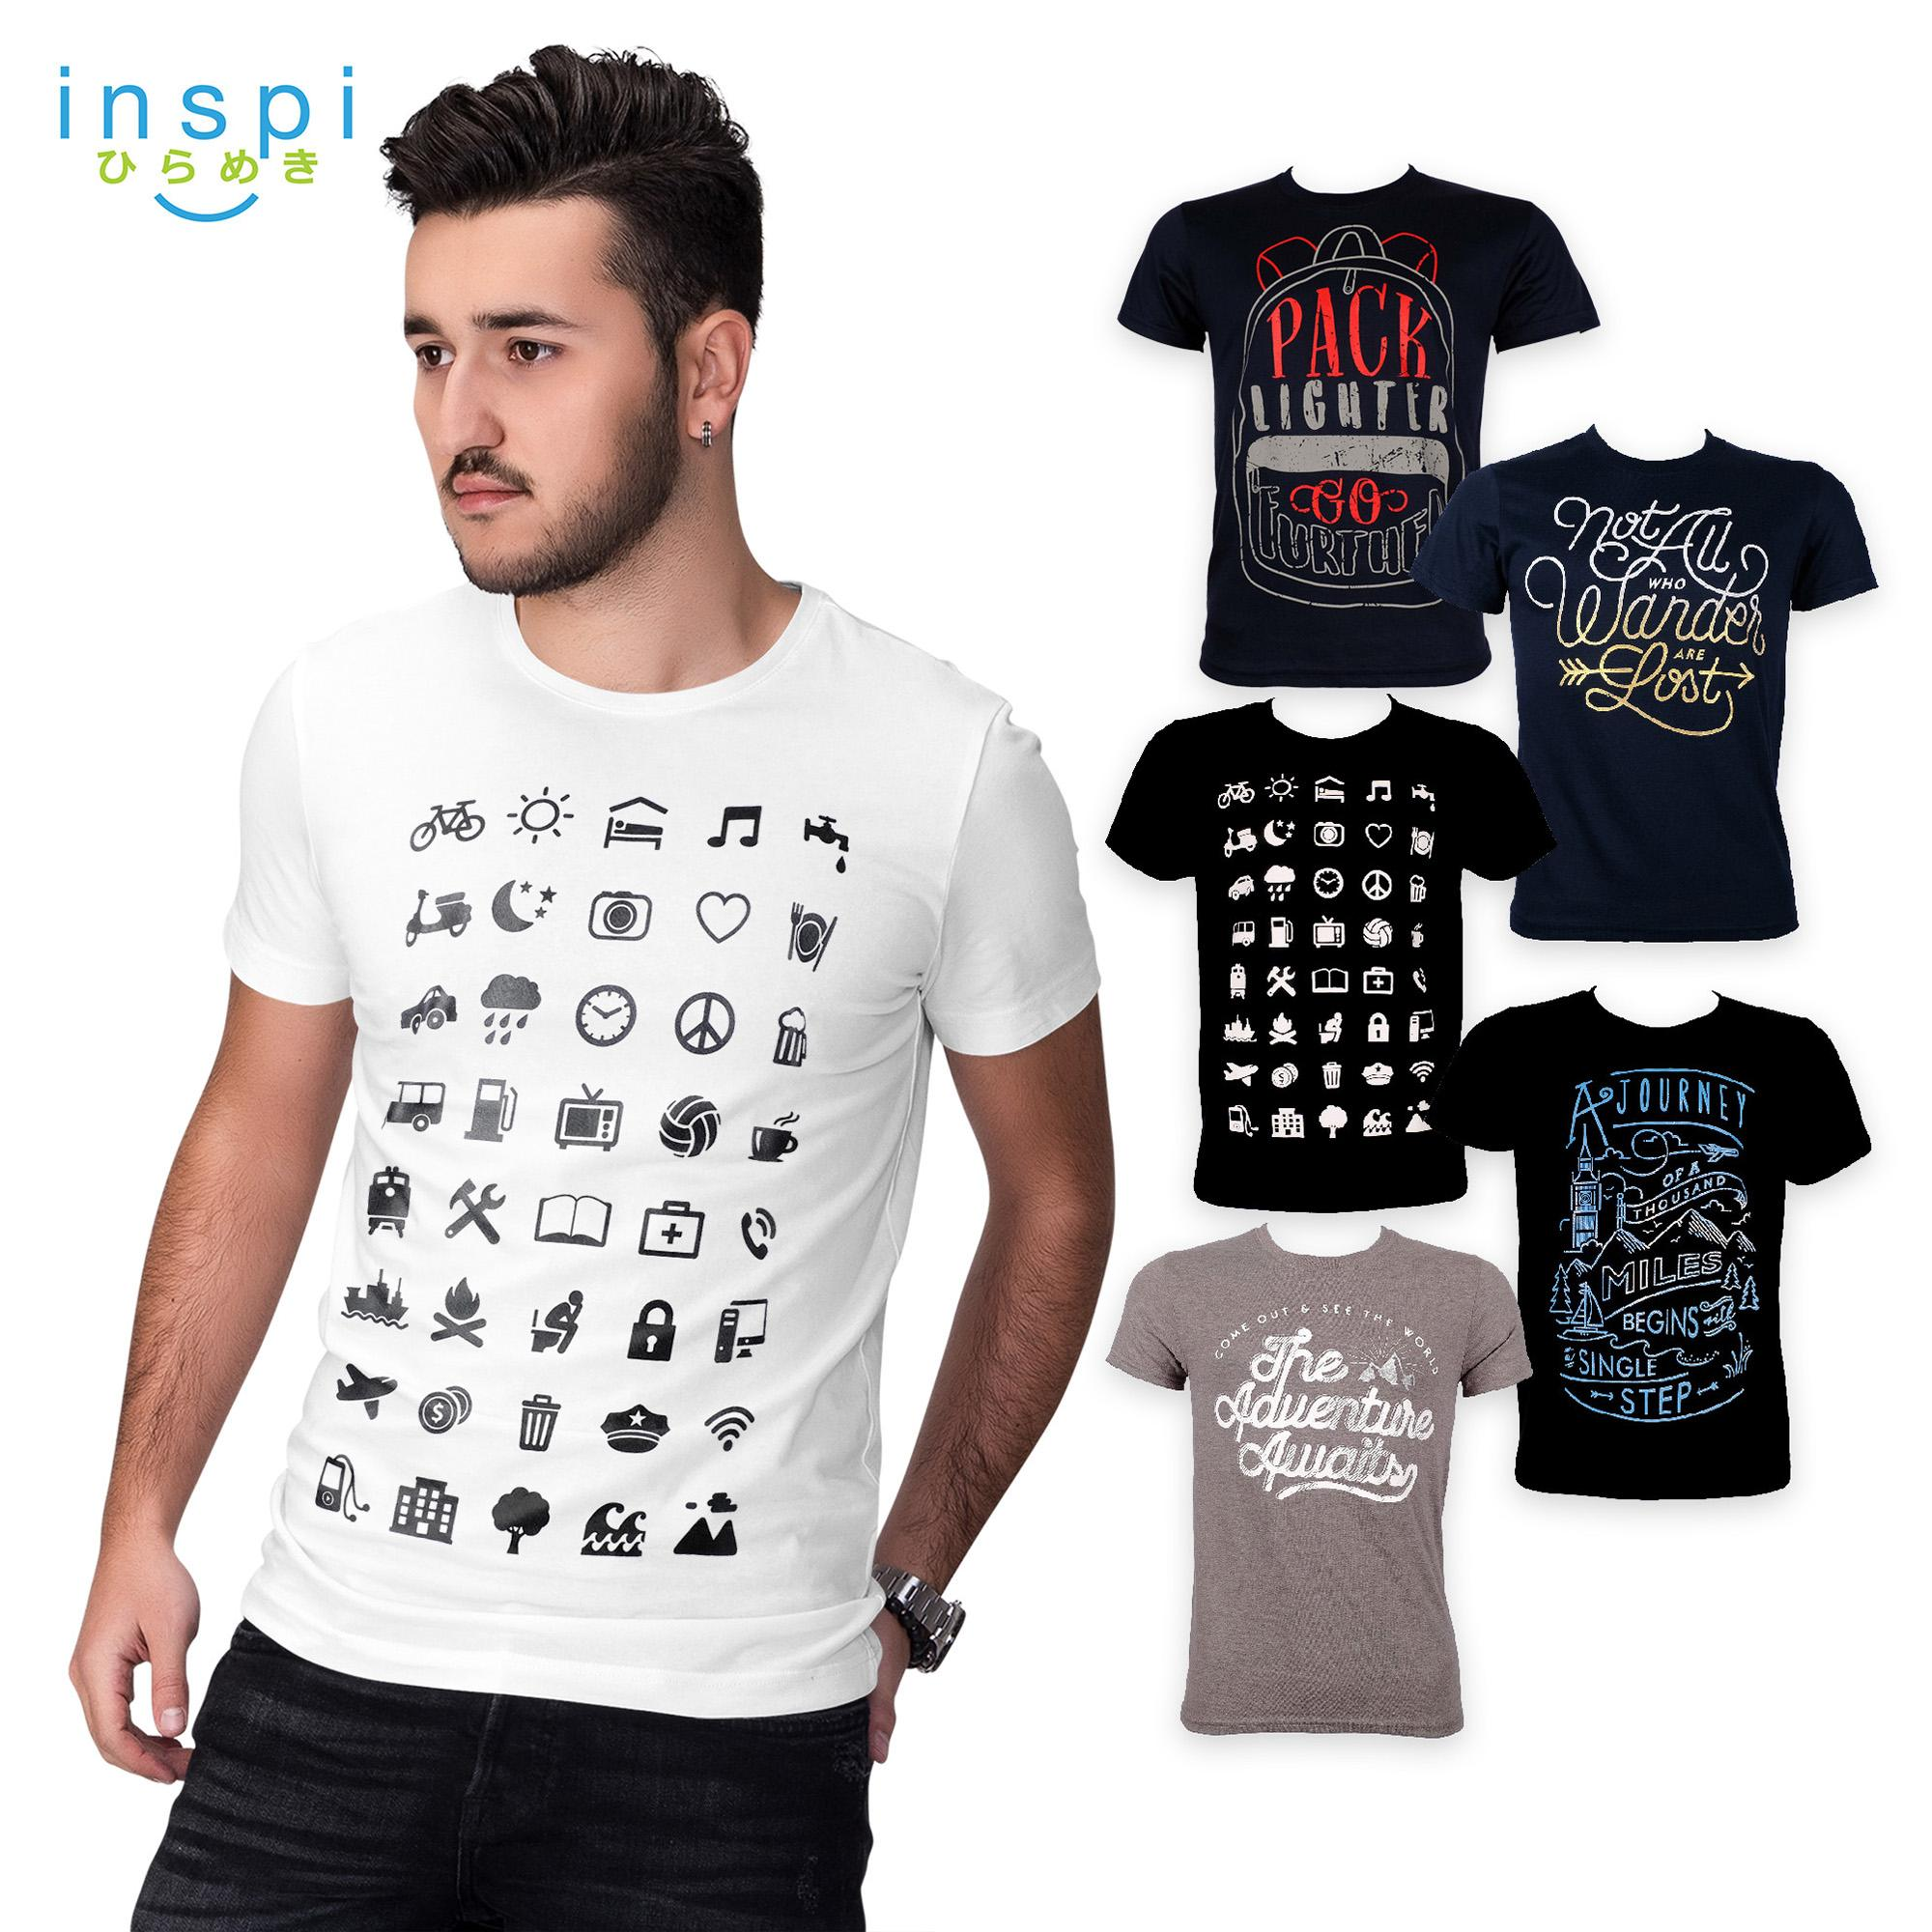 987e1419c INSPI Tees Travel Collection tshirt printed graphic tee Mens t shirt shirts  for men tshirts sale